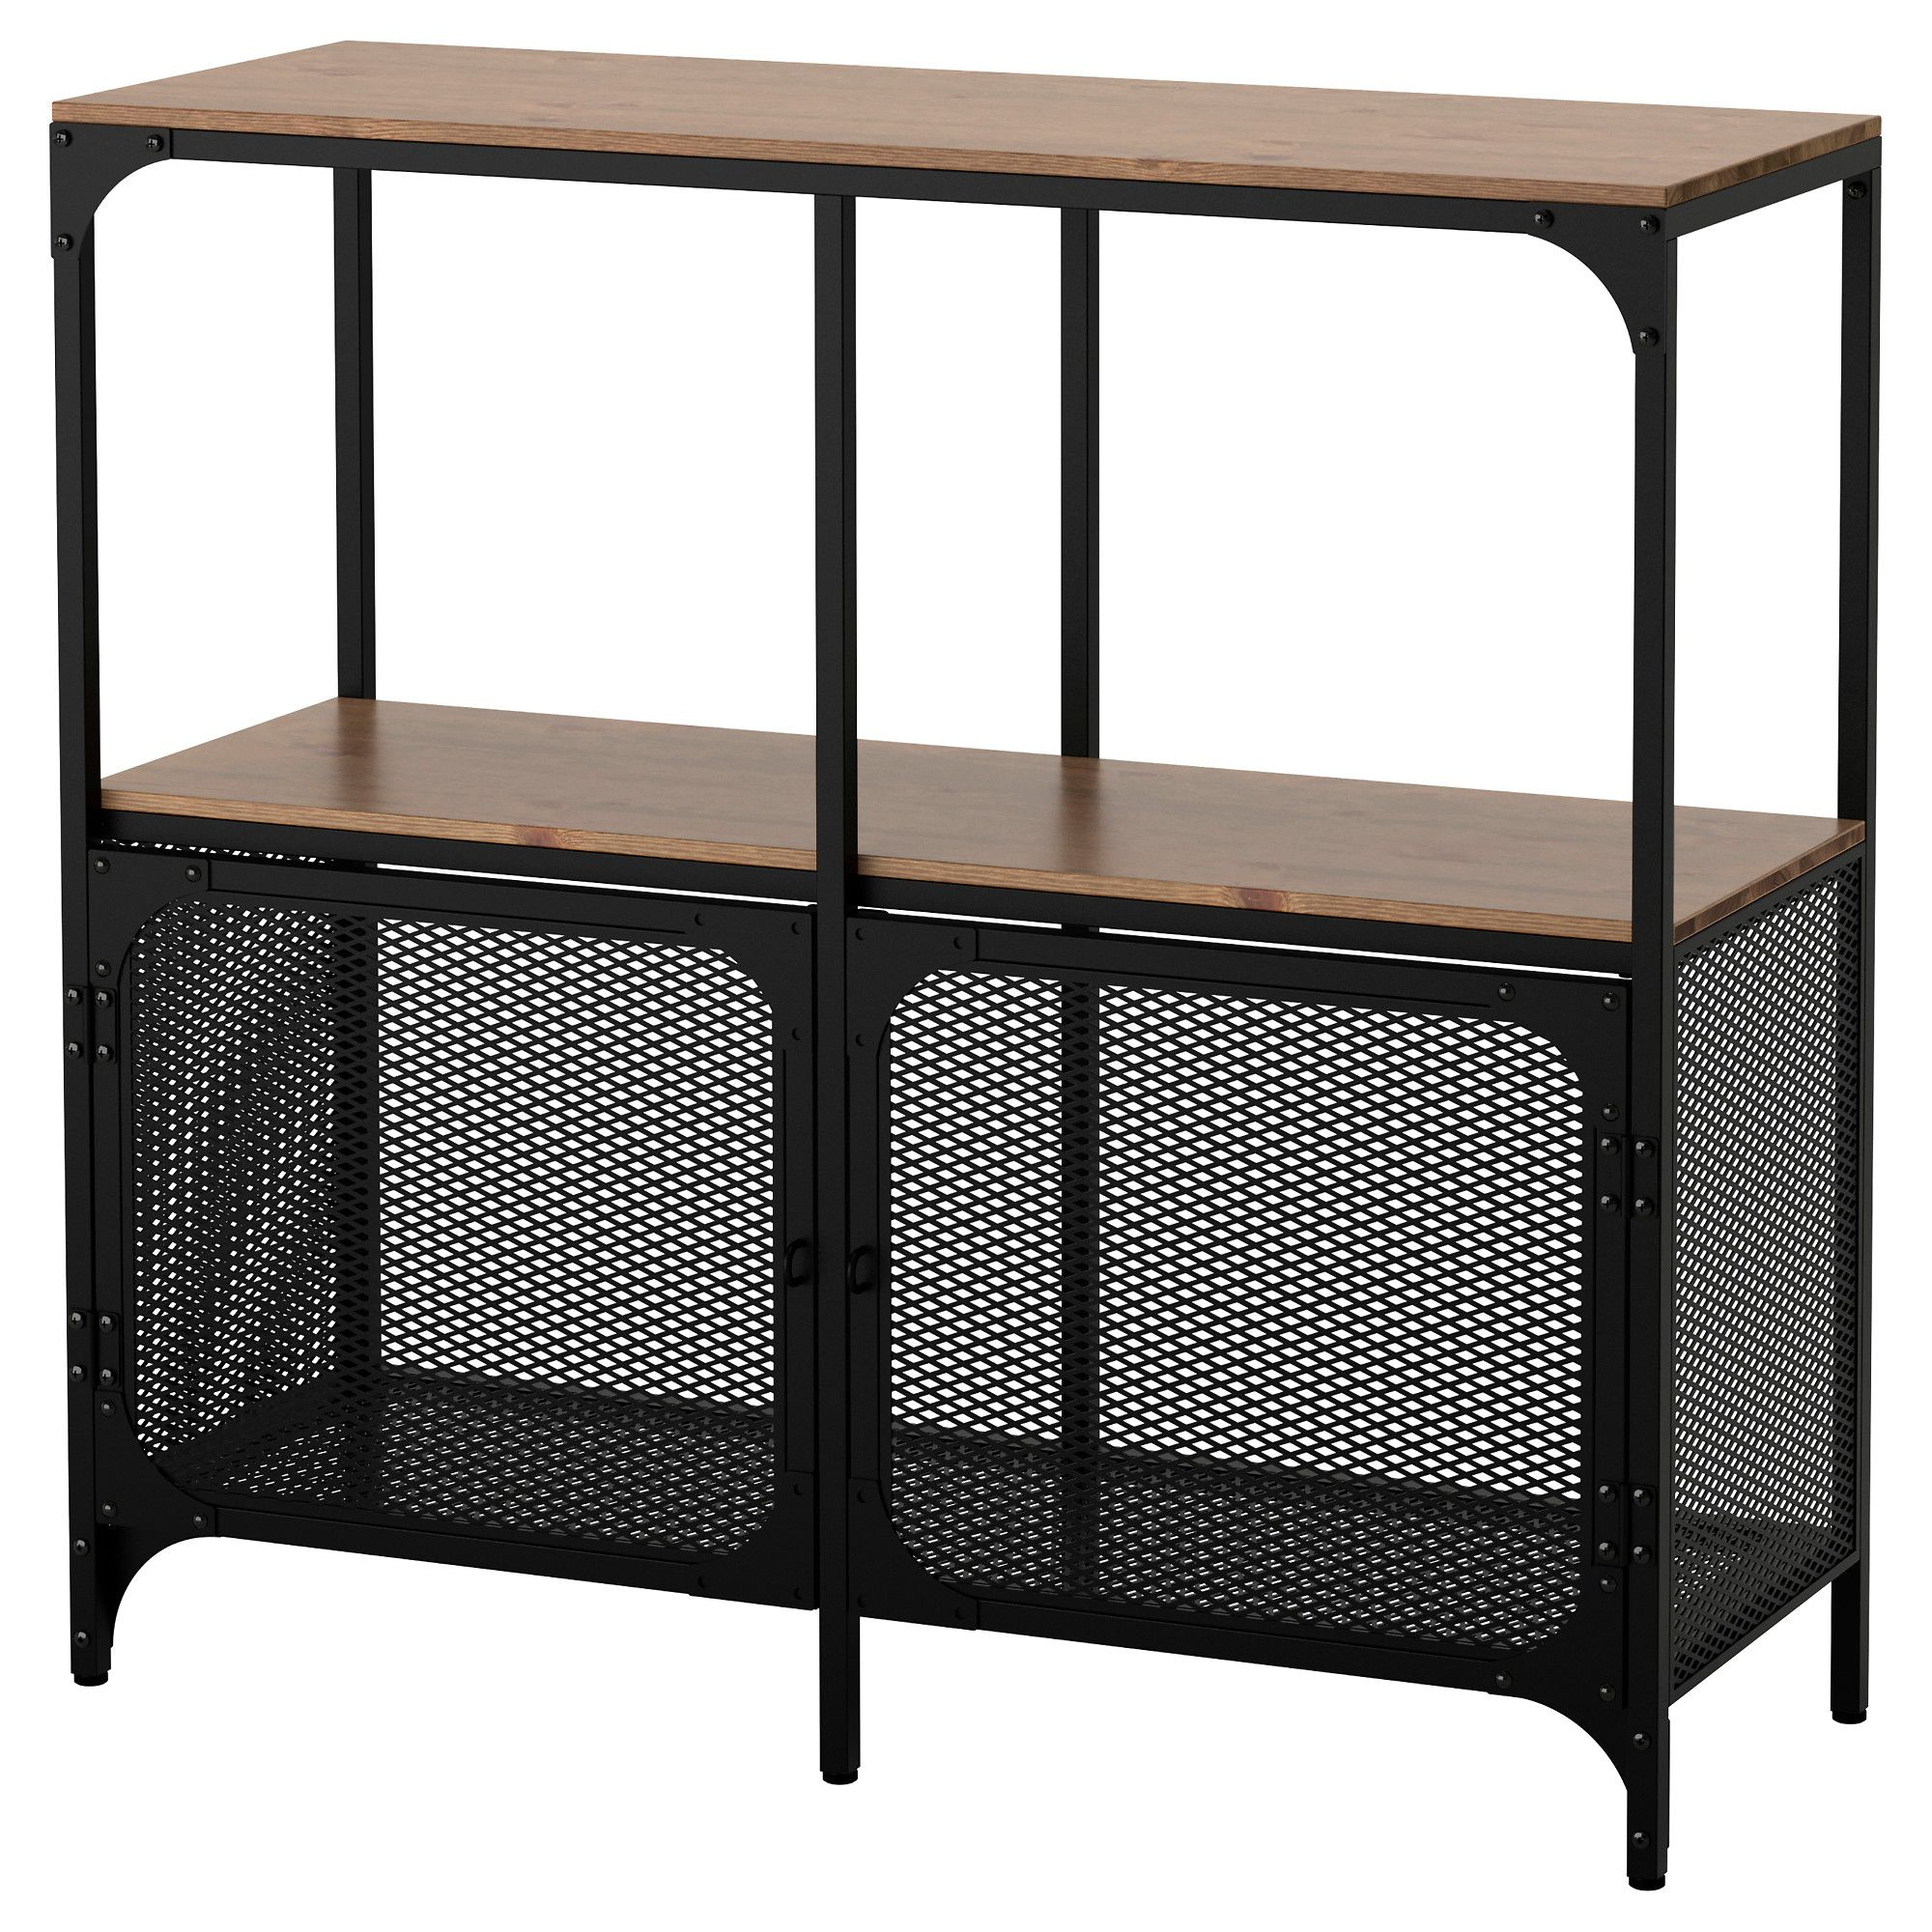 fjllbo shelf unit black